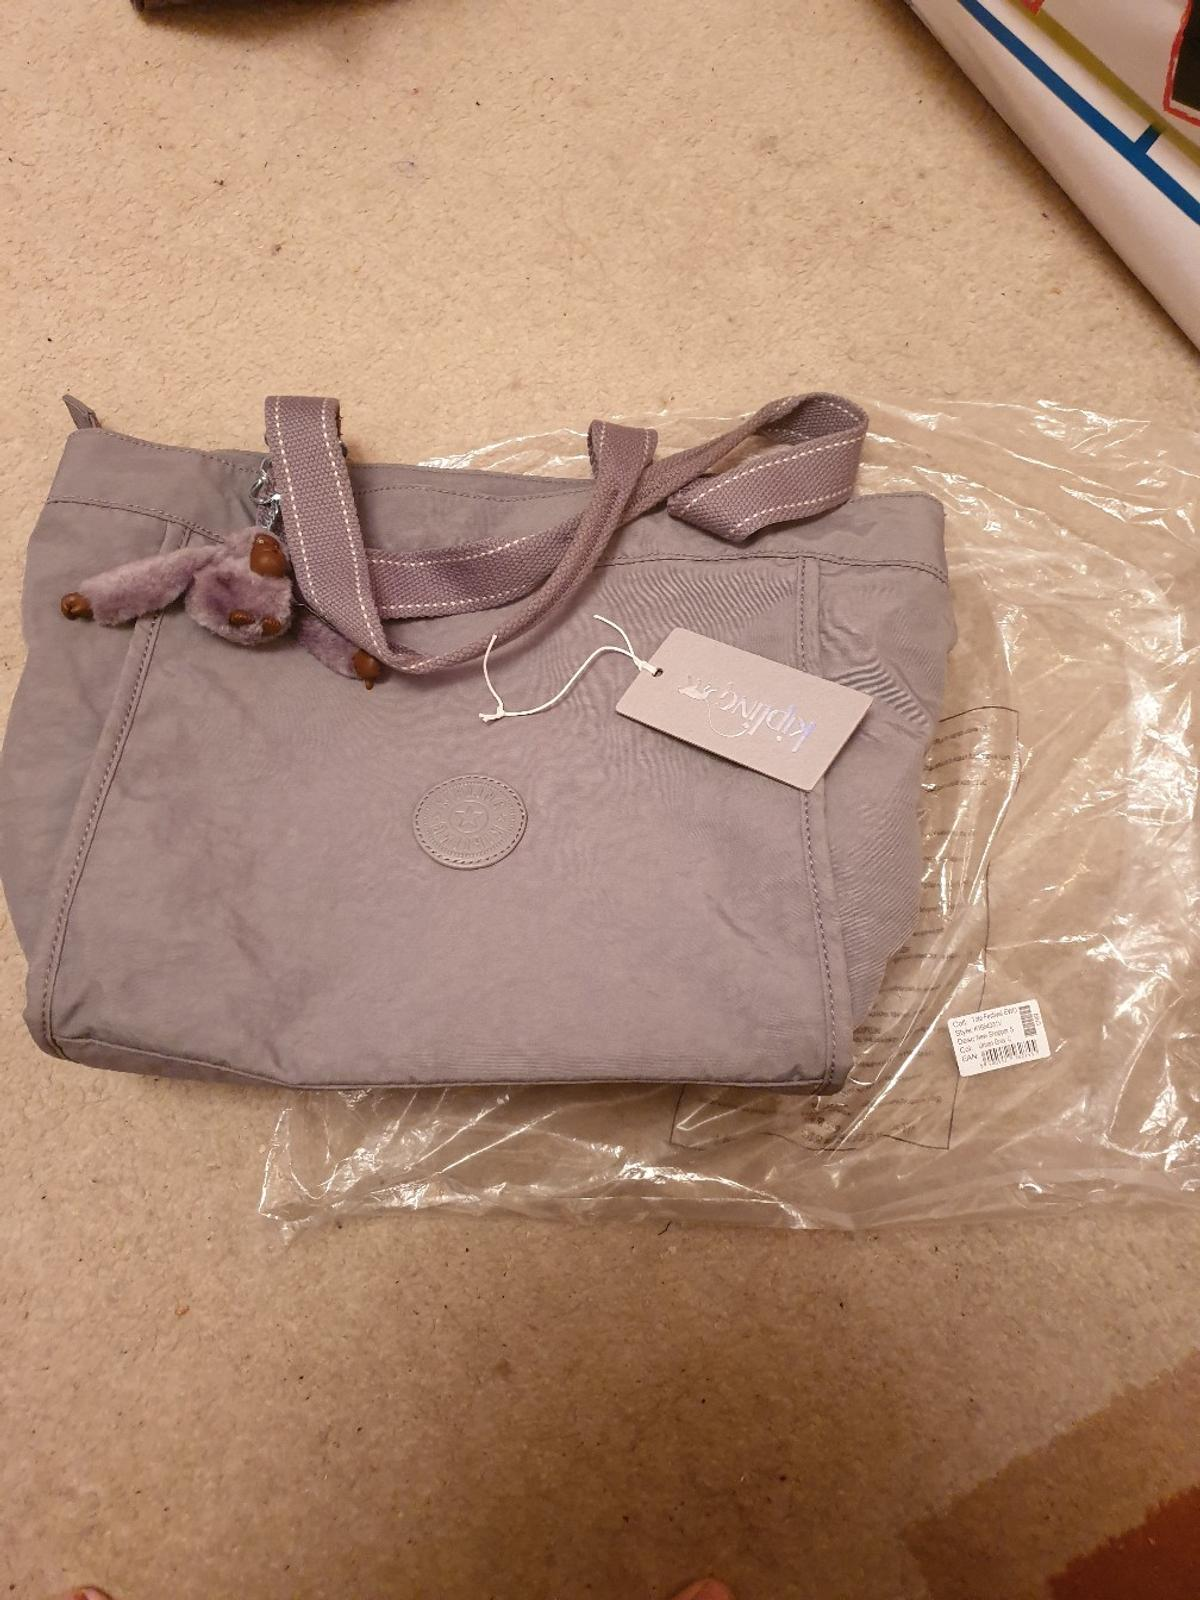 Kipling handbad new with Tags. in grey with monkey and long strap. lovely bag.